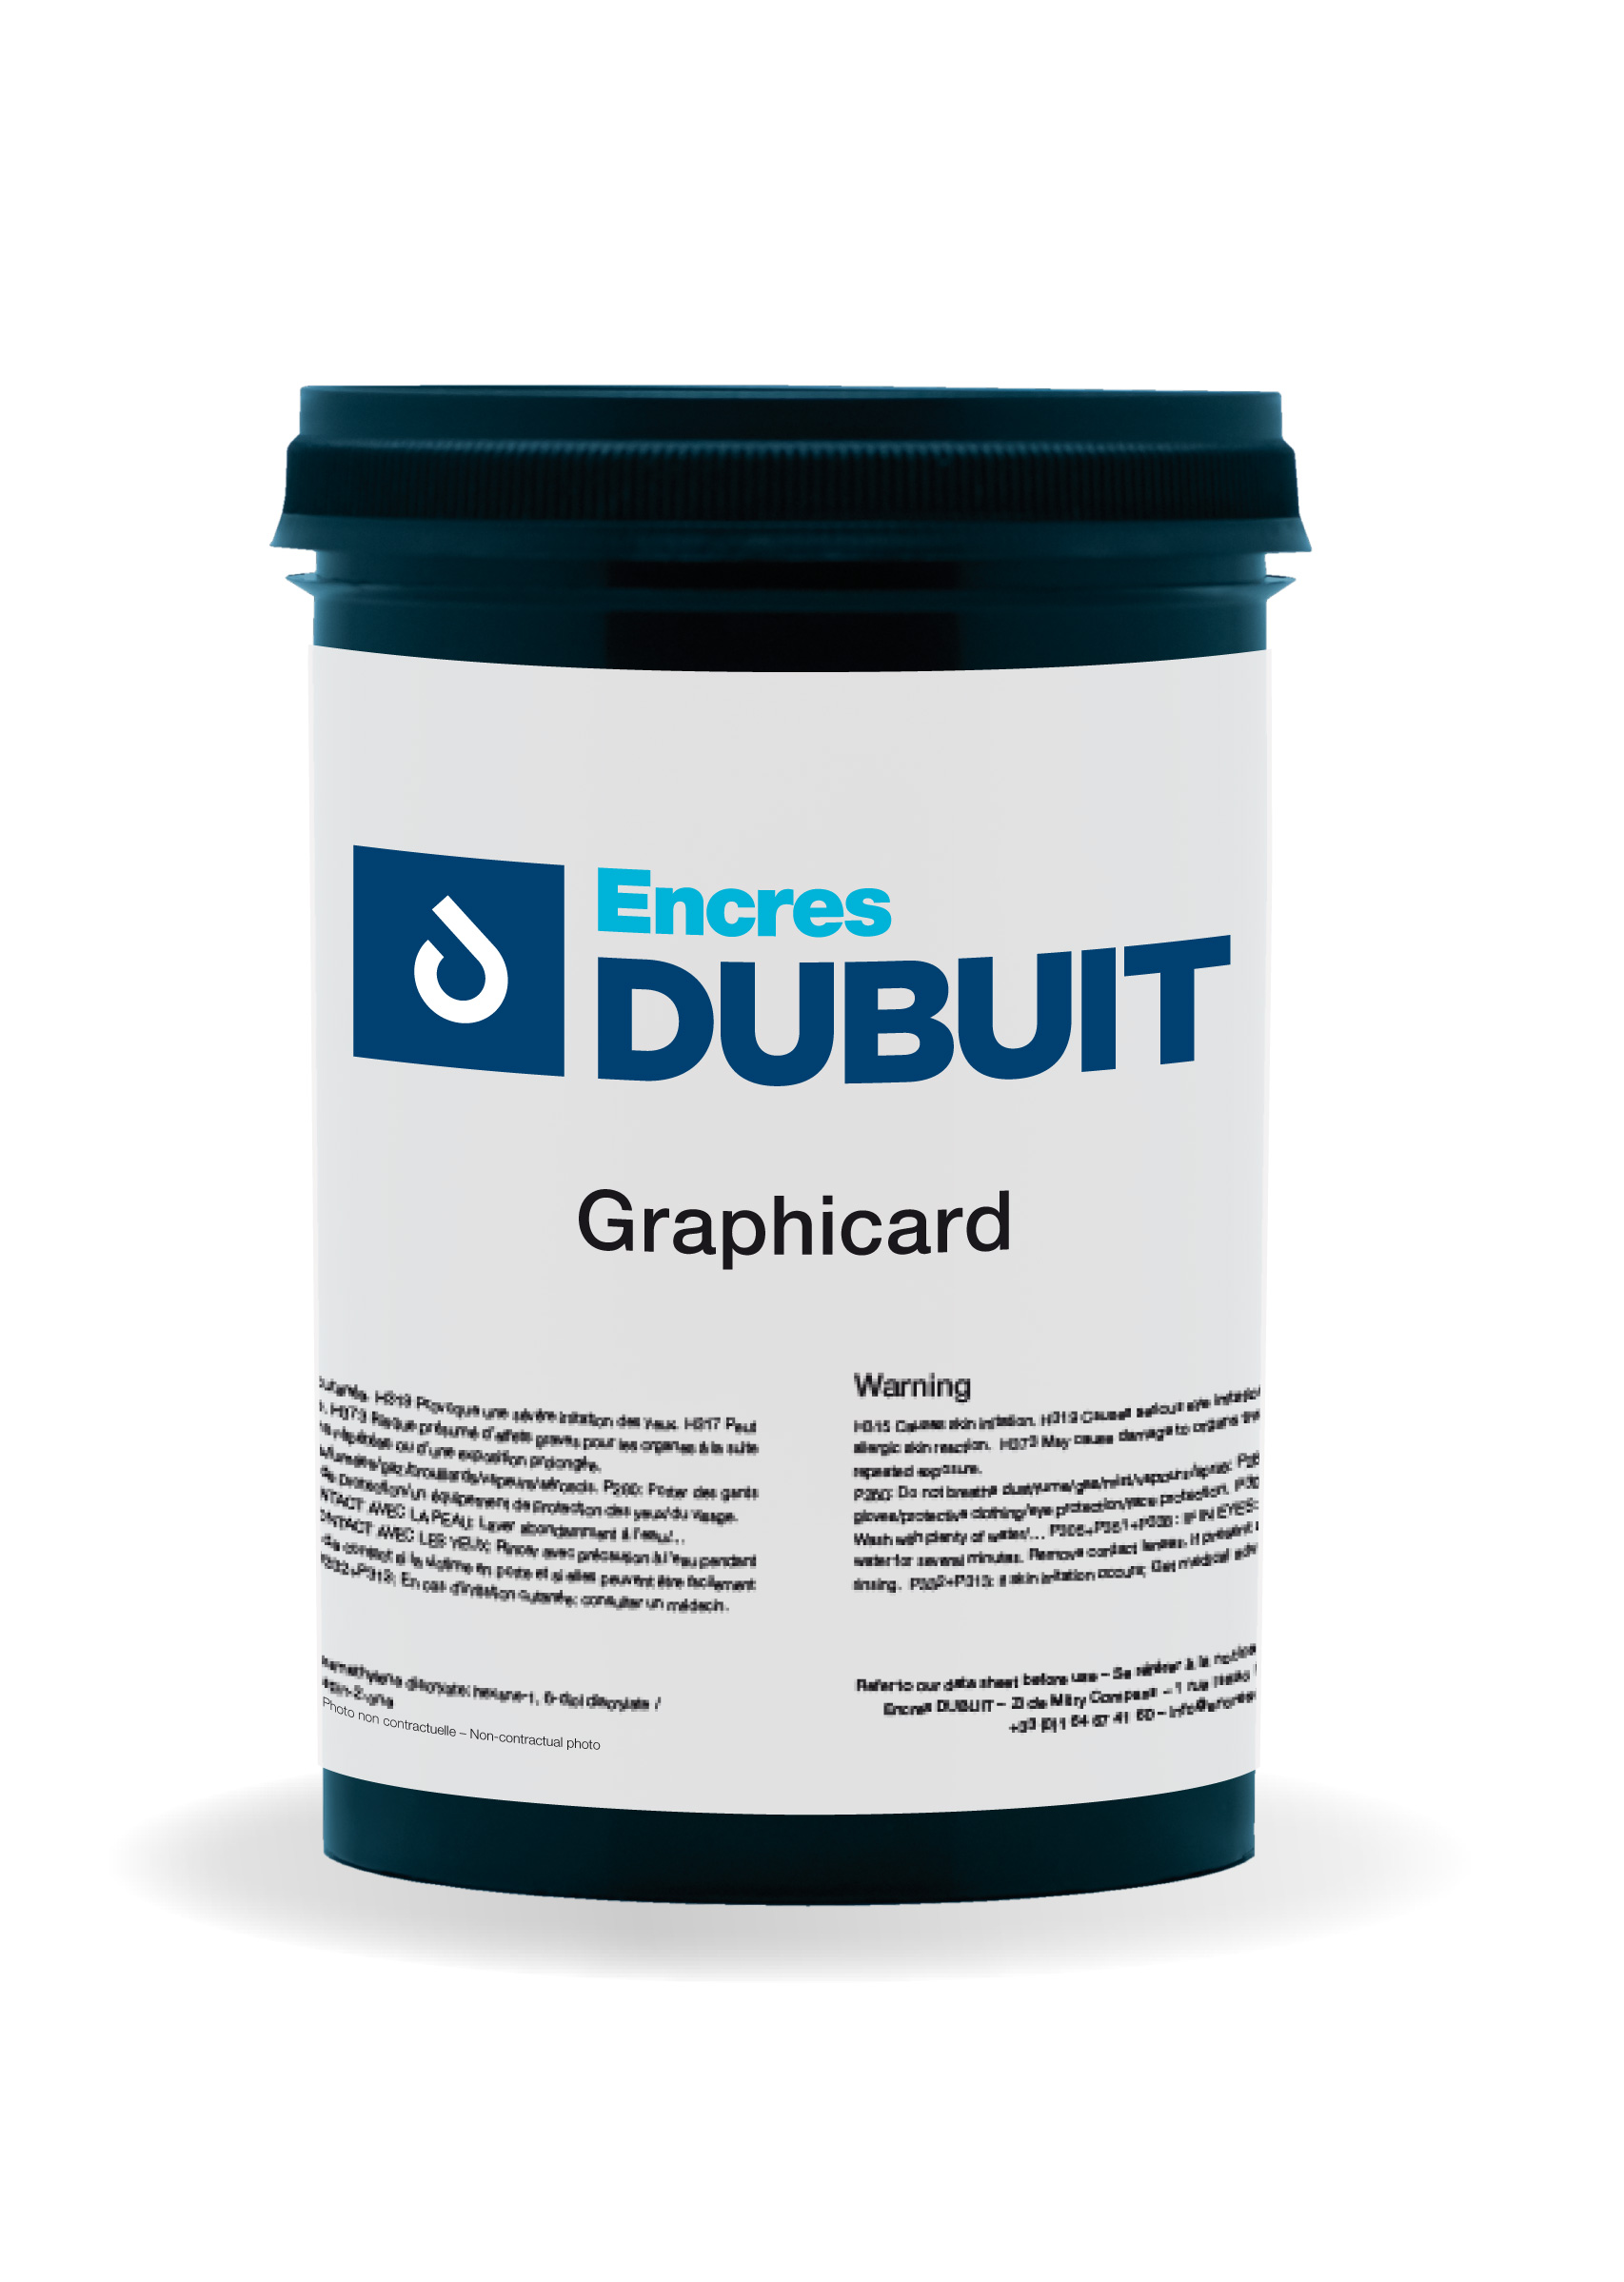 Serie Graphicard Encres DUBUIT Solvent Screen Printing Ink